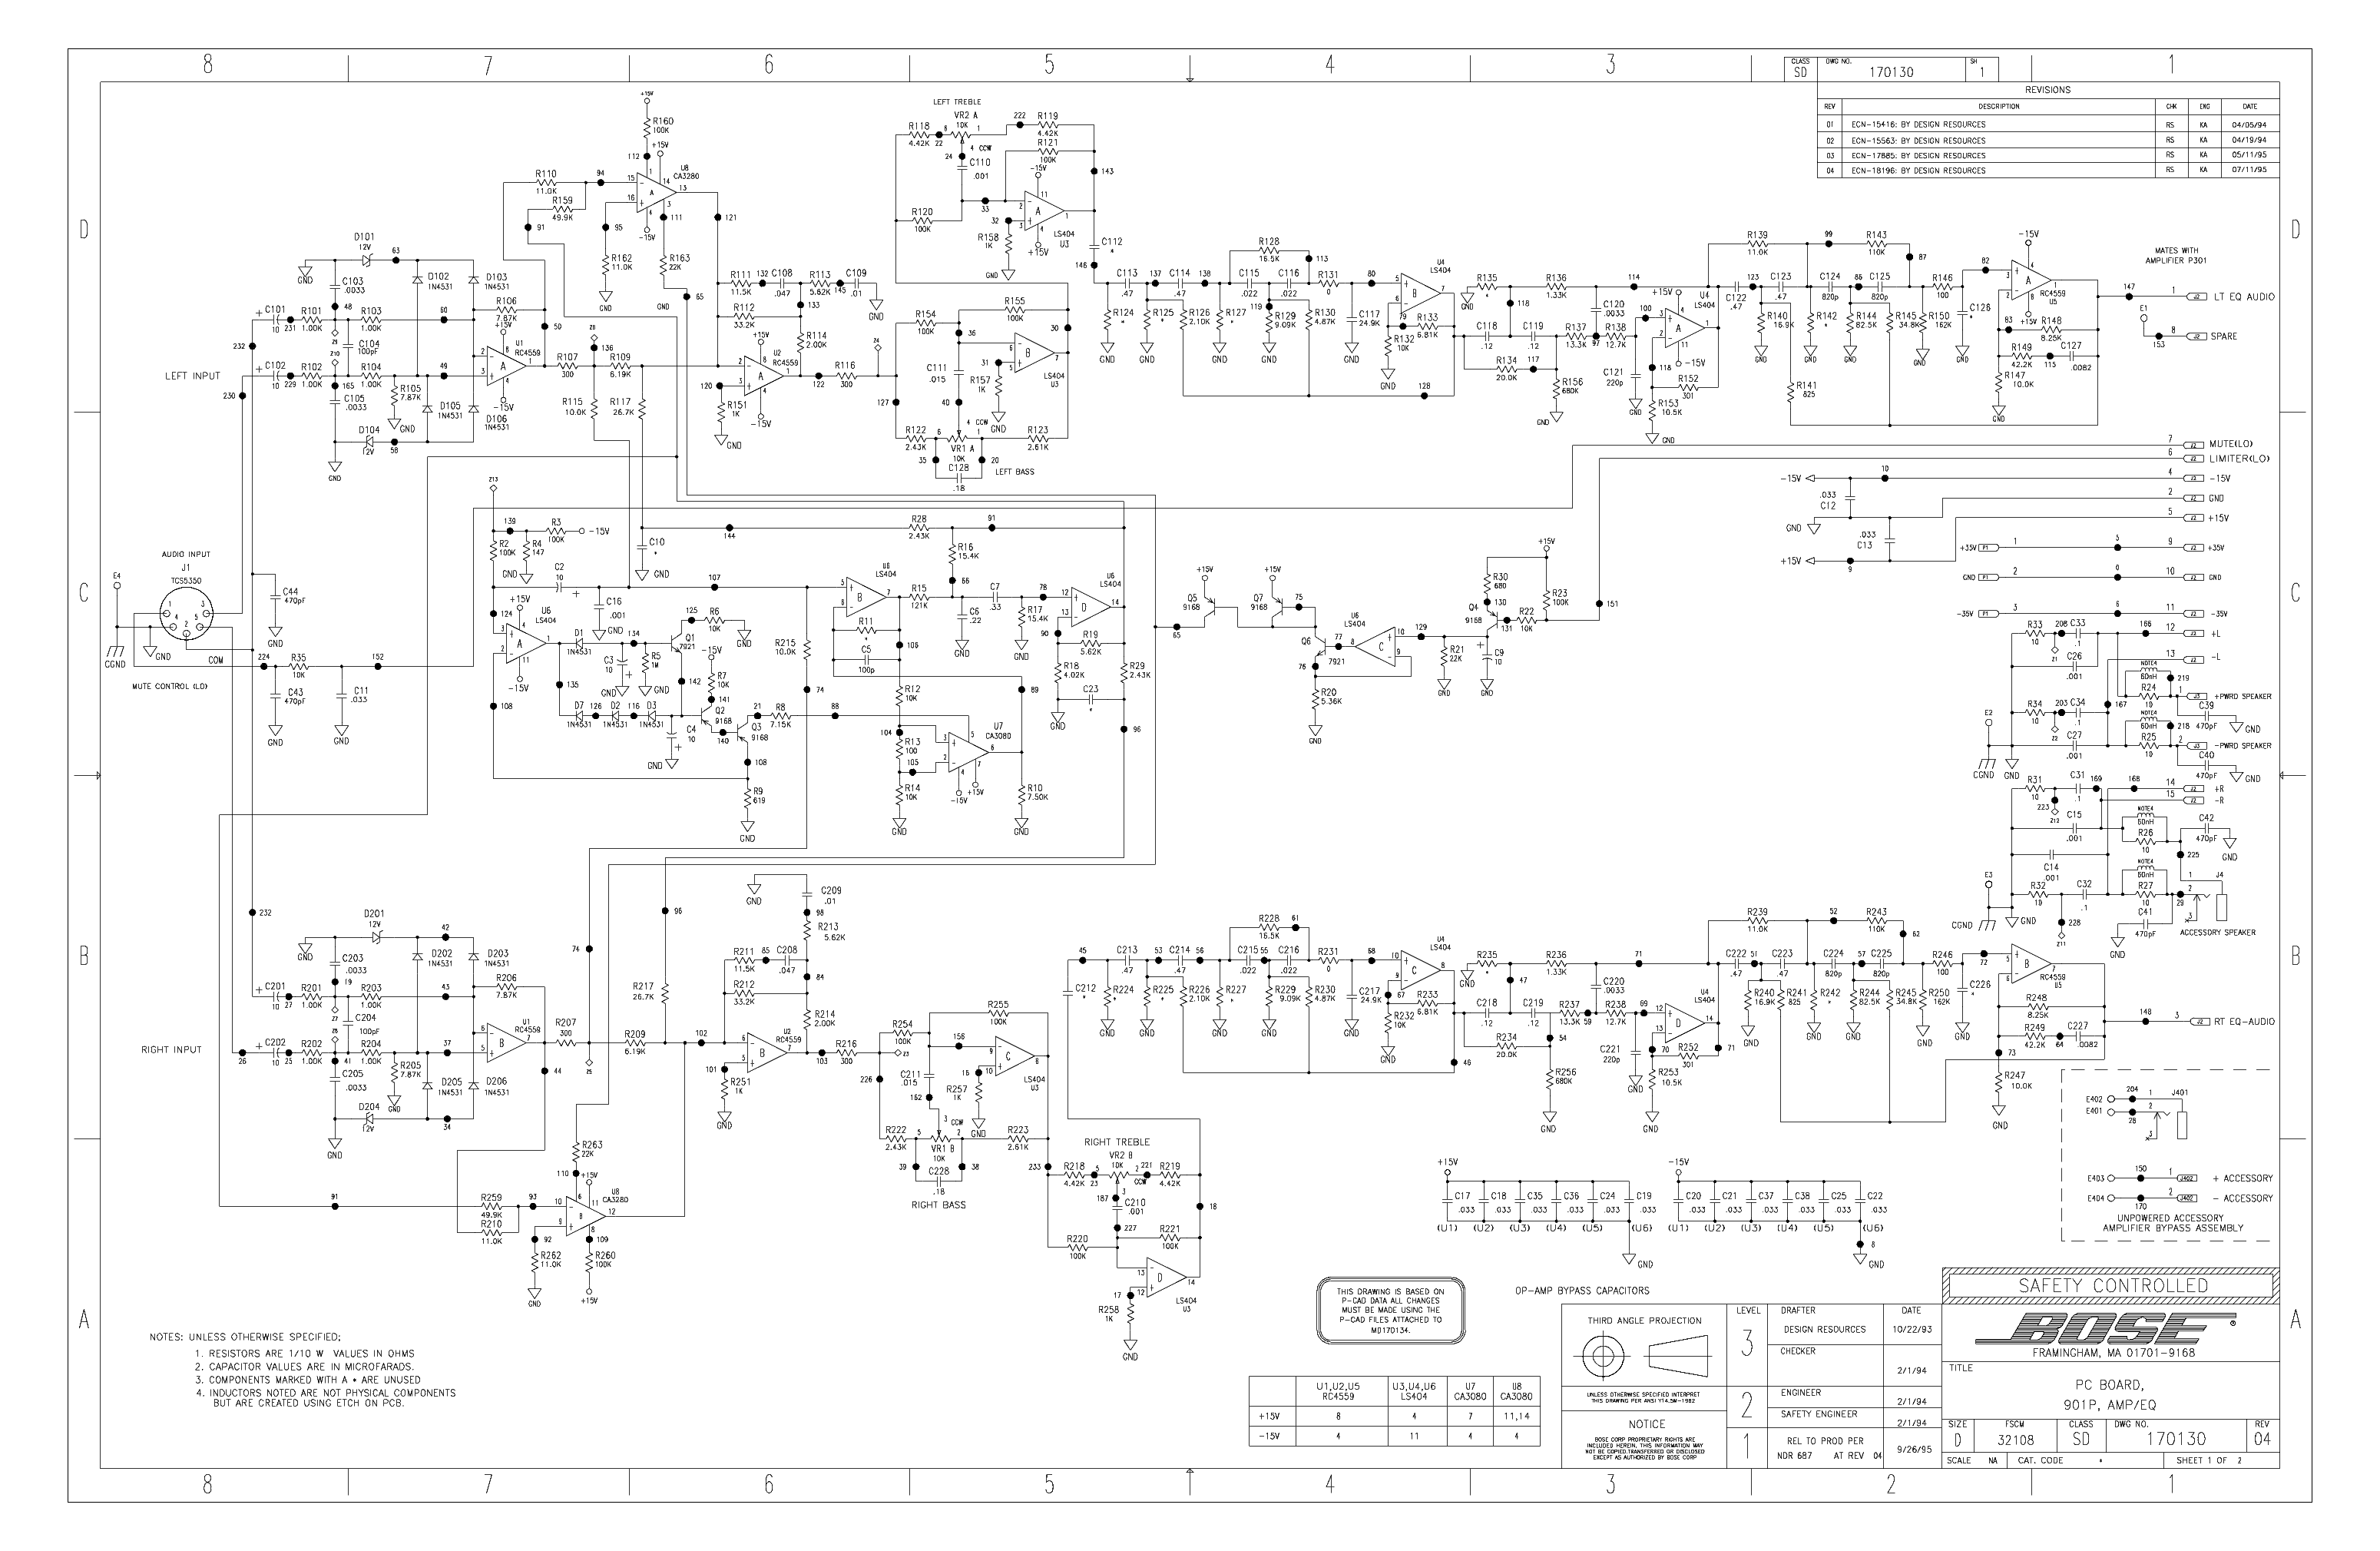 Bose 901 Wiring Diagram 23 Images Diagrams Eq 901ppdf 1 1600 Vi Amplifier Circuit Efcaviation Com At